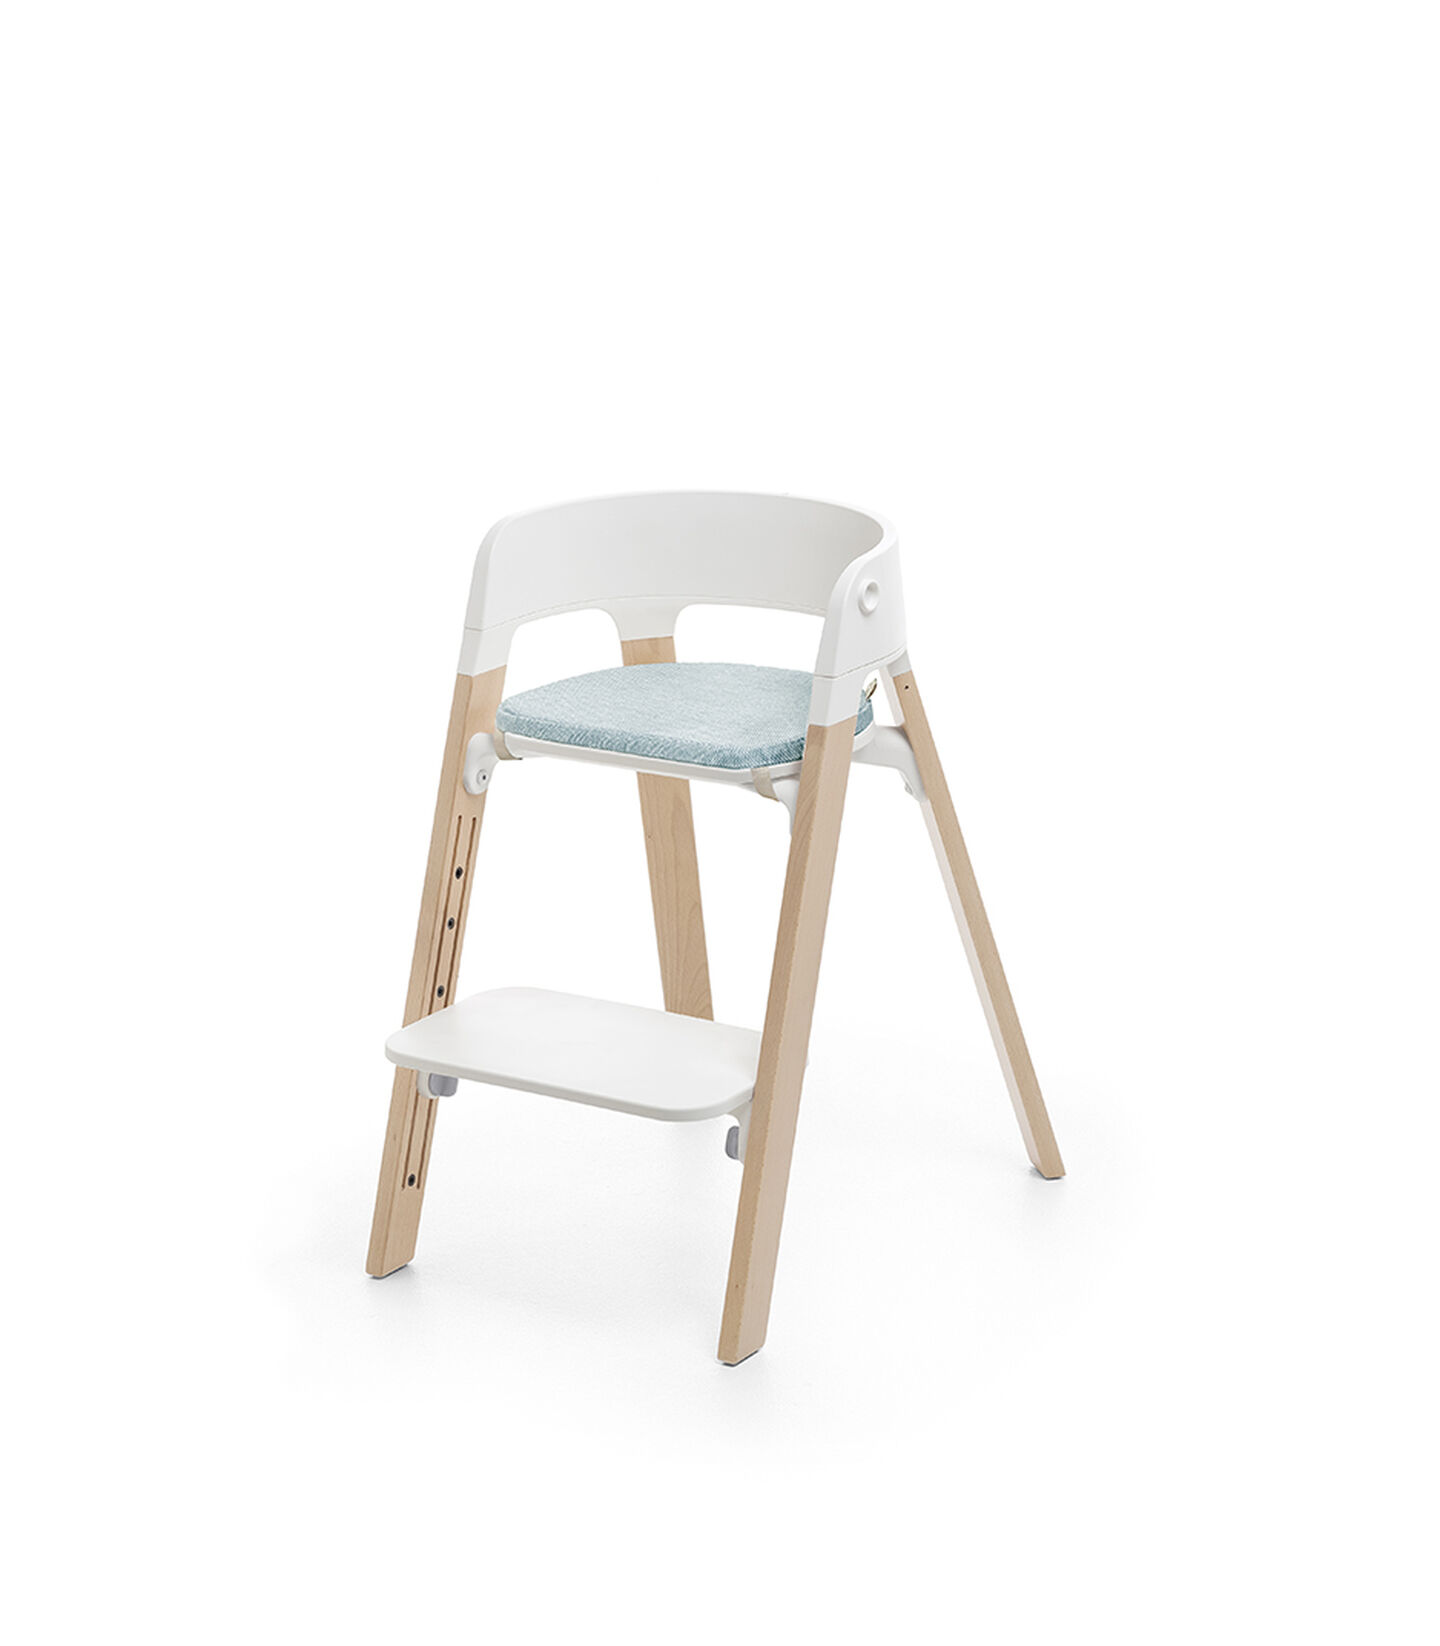 Stokke® Steps™ Cushion Jade Twill, Jade Twill, mainview view 2